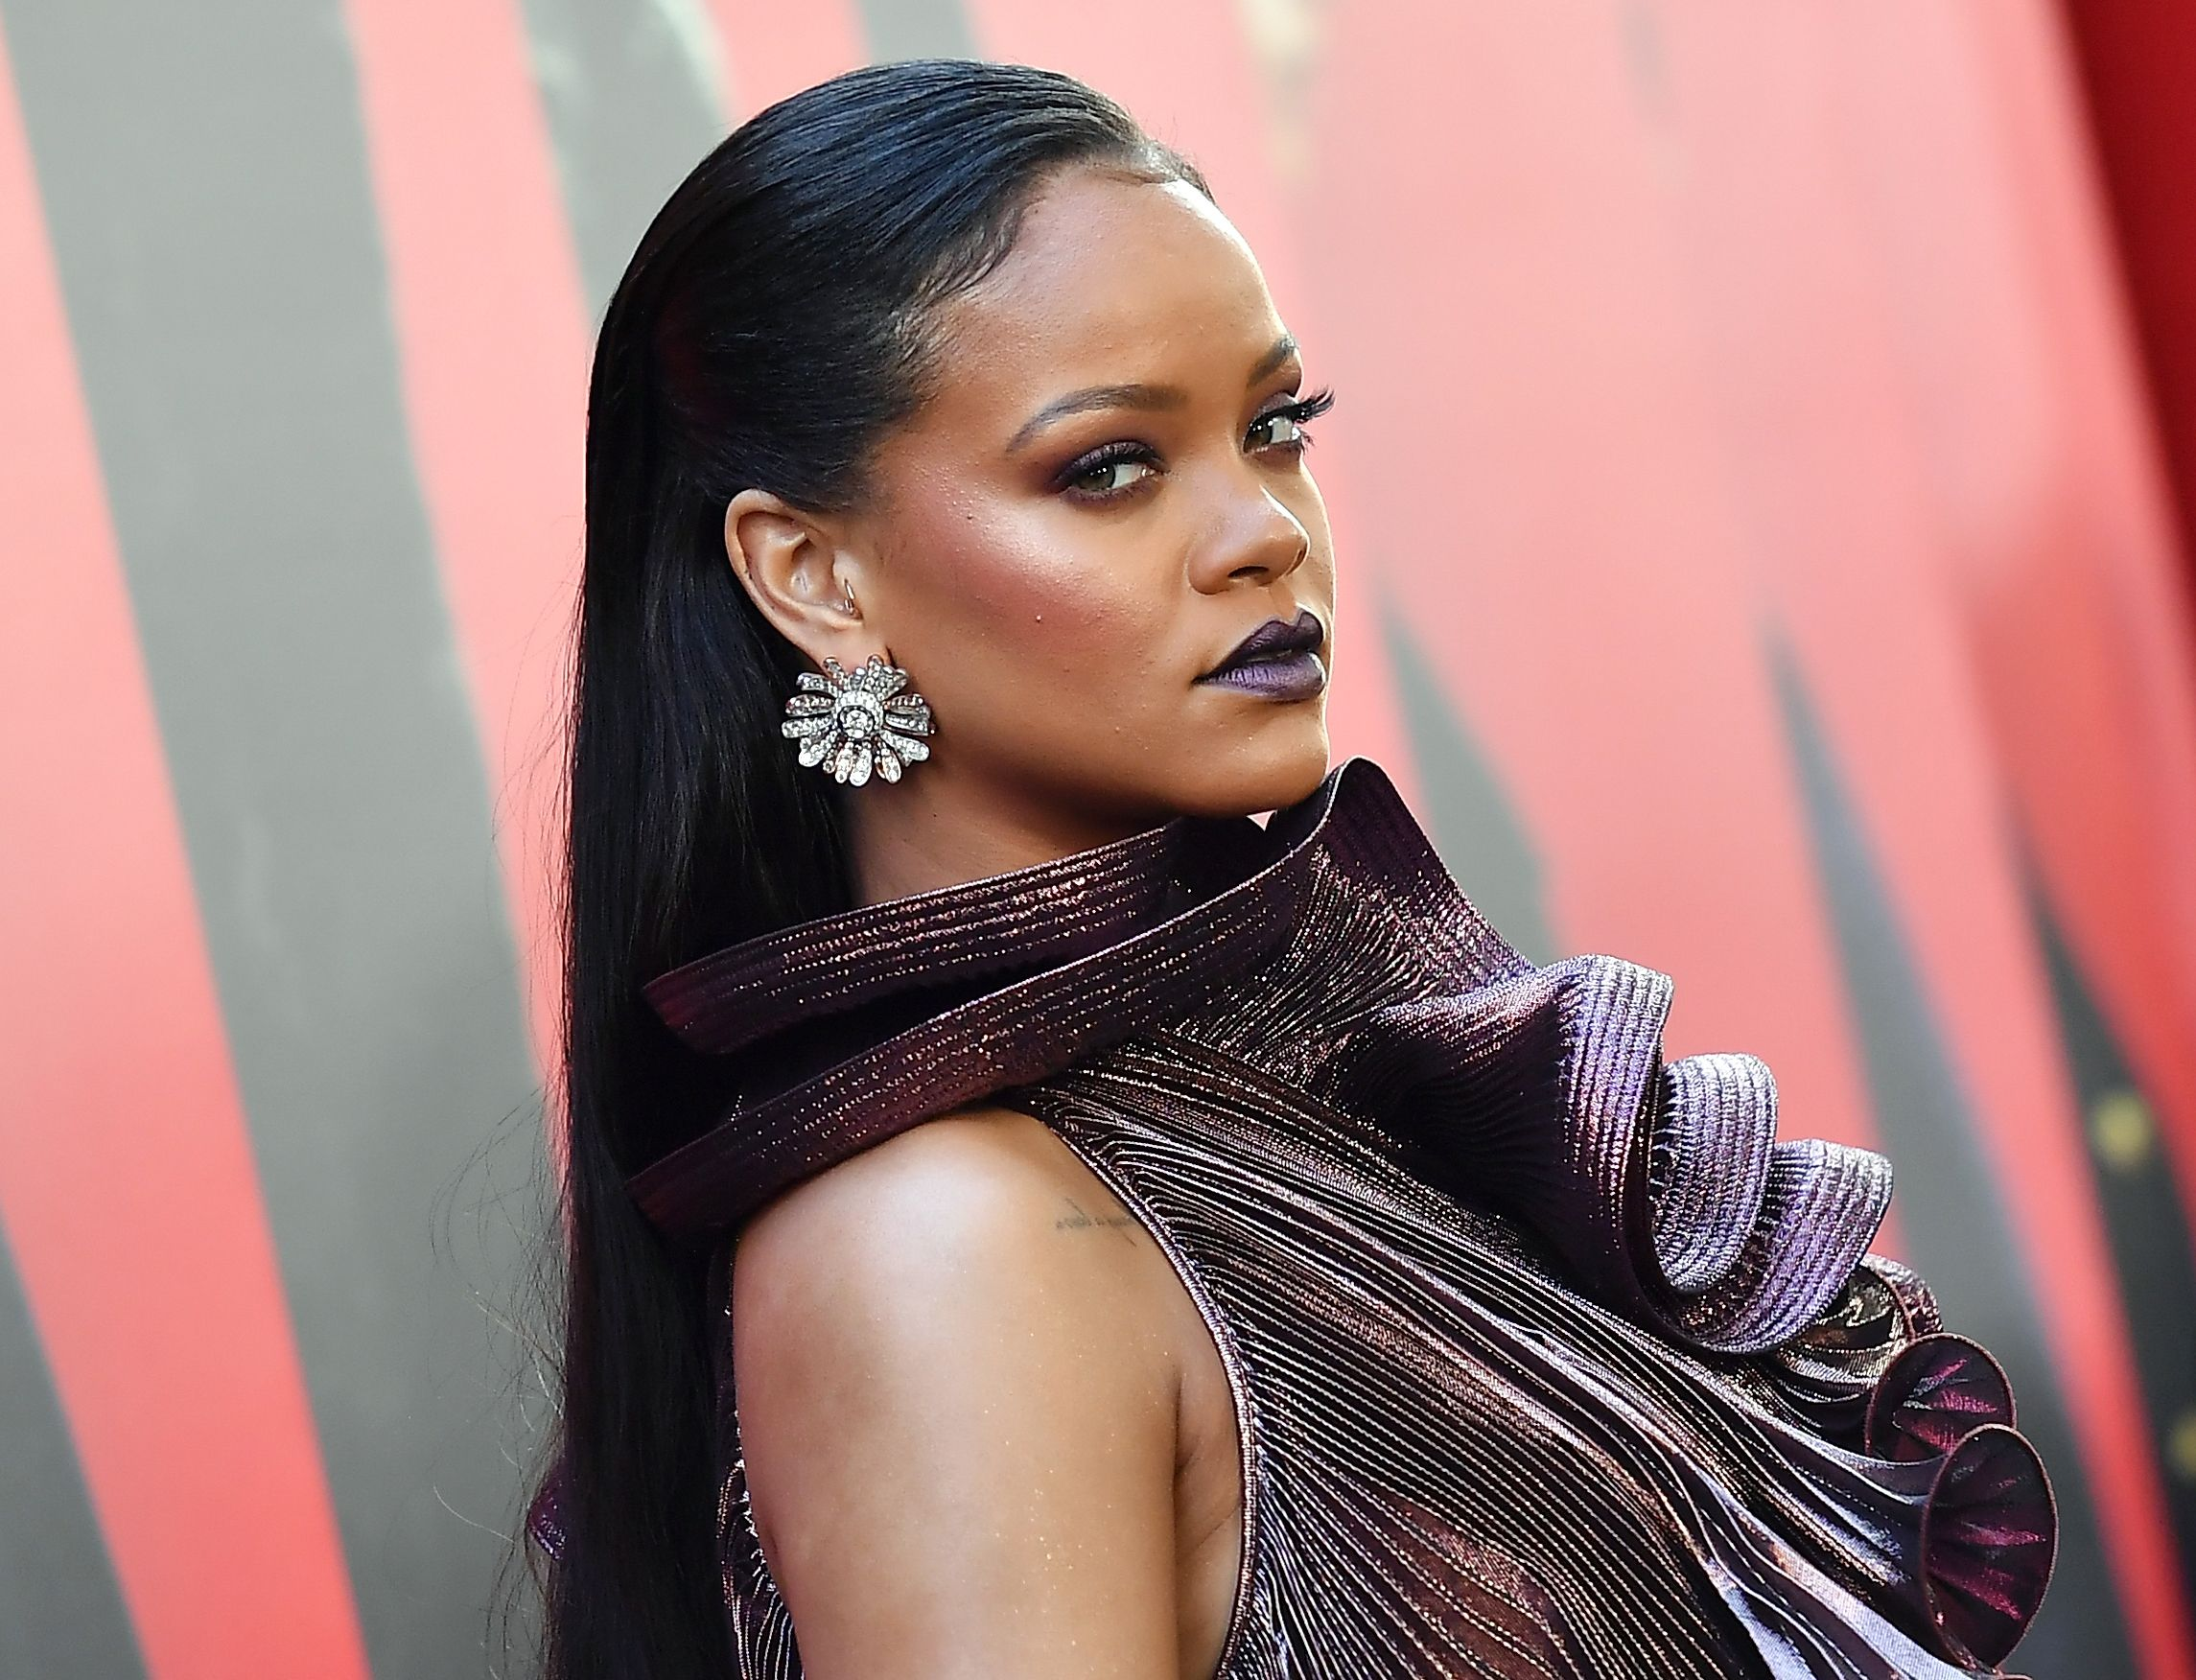 No, Rihanna Will Not Be Part of Black Panther 2